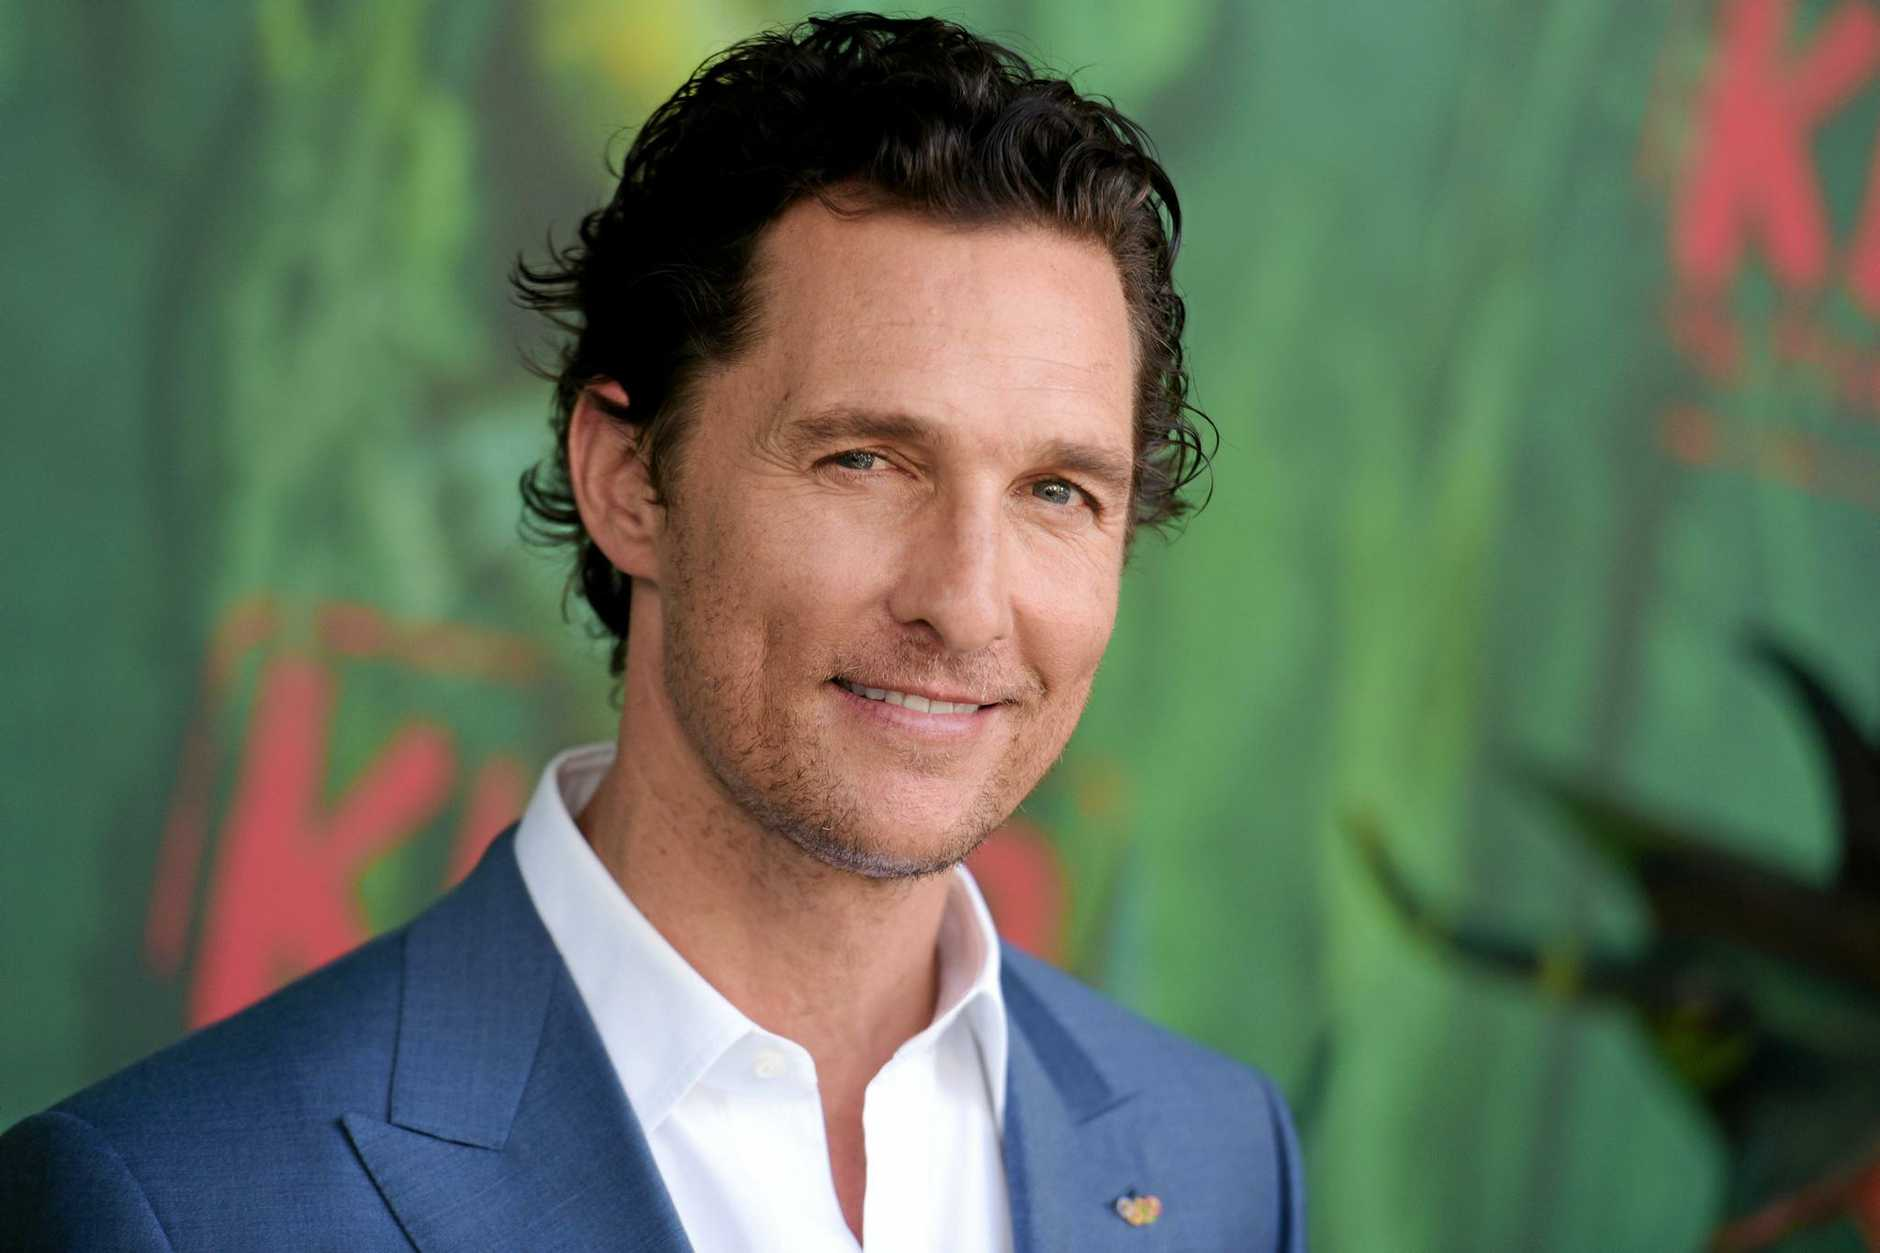 OSCAR winner Matthew McConaughey says won't return to his rom com roots.